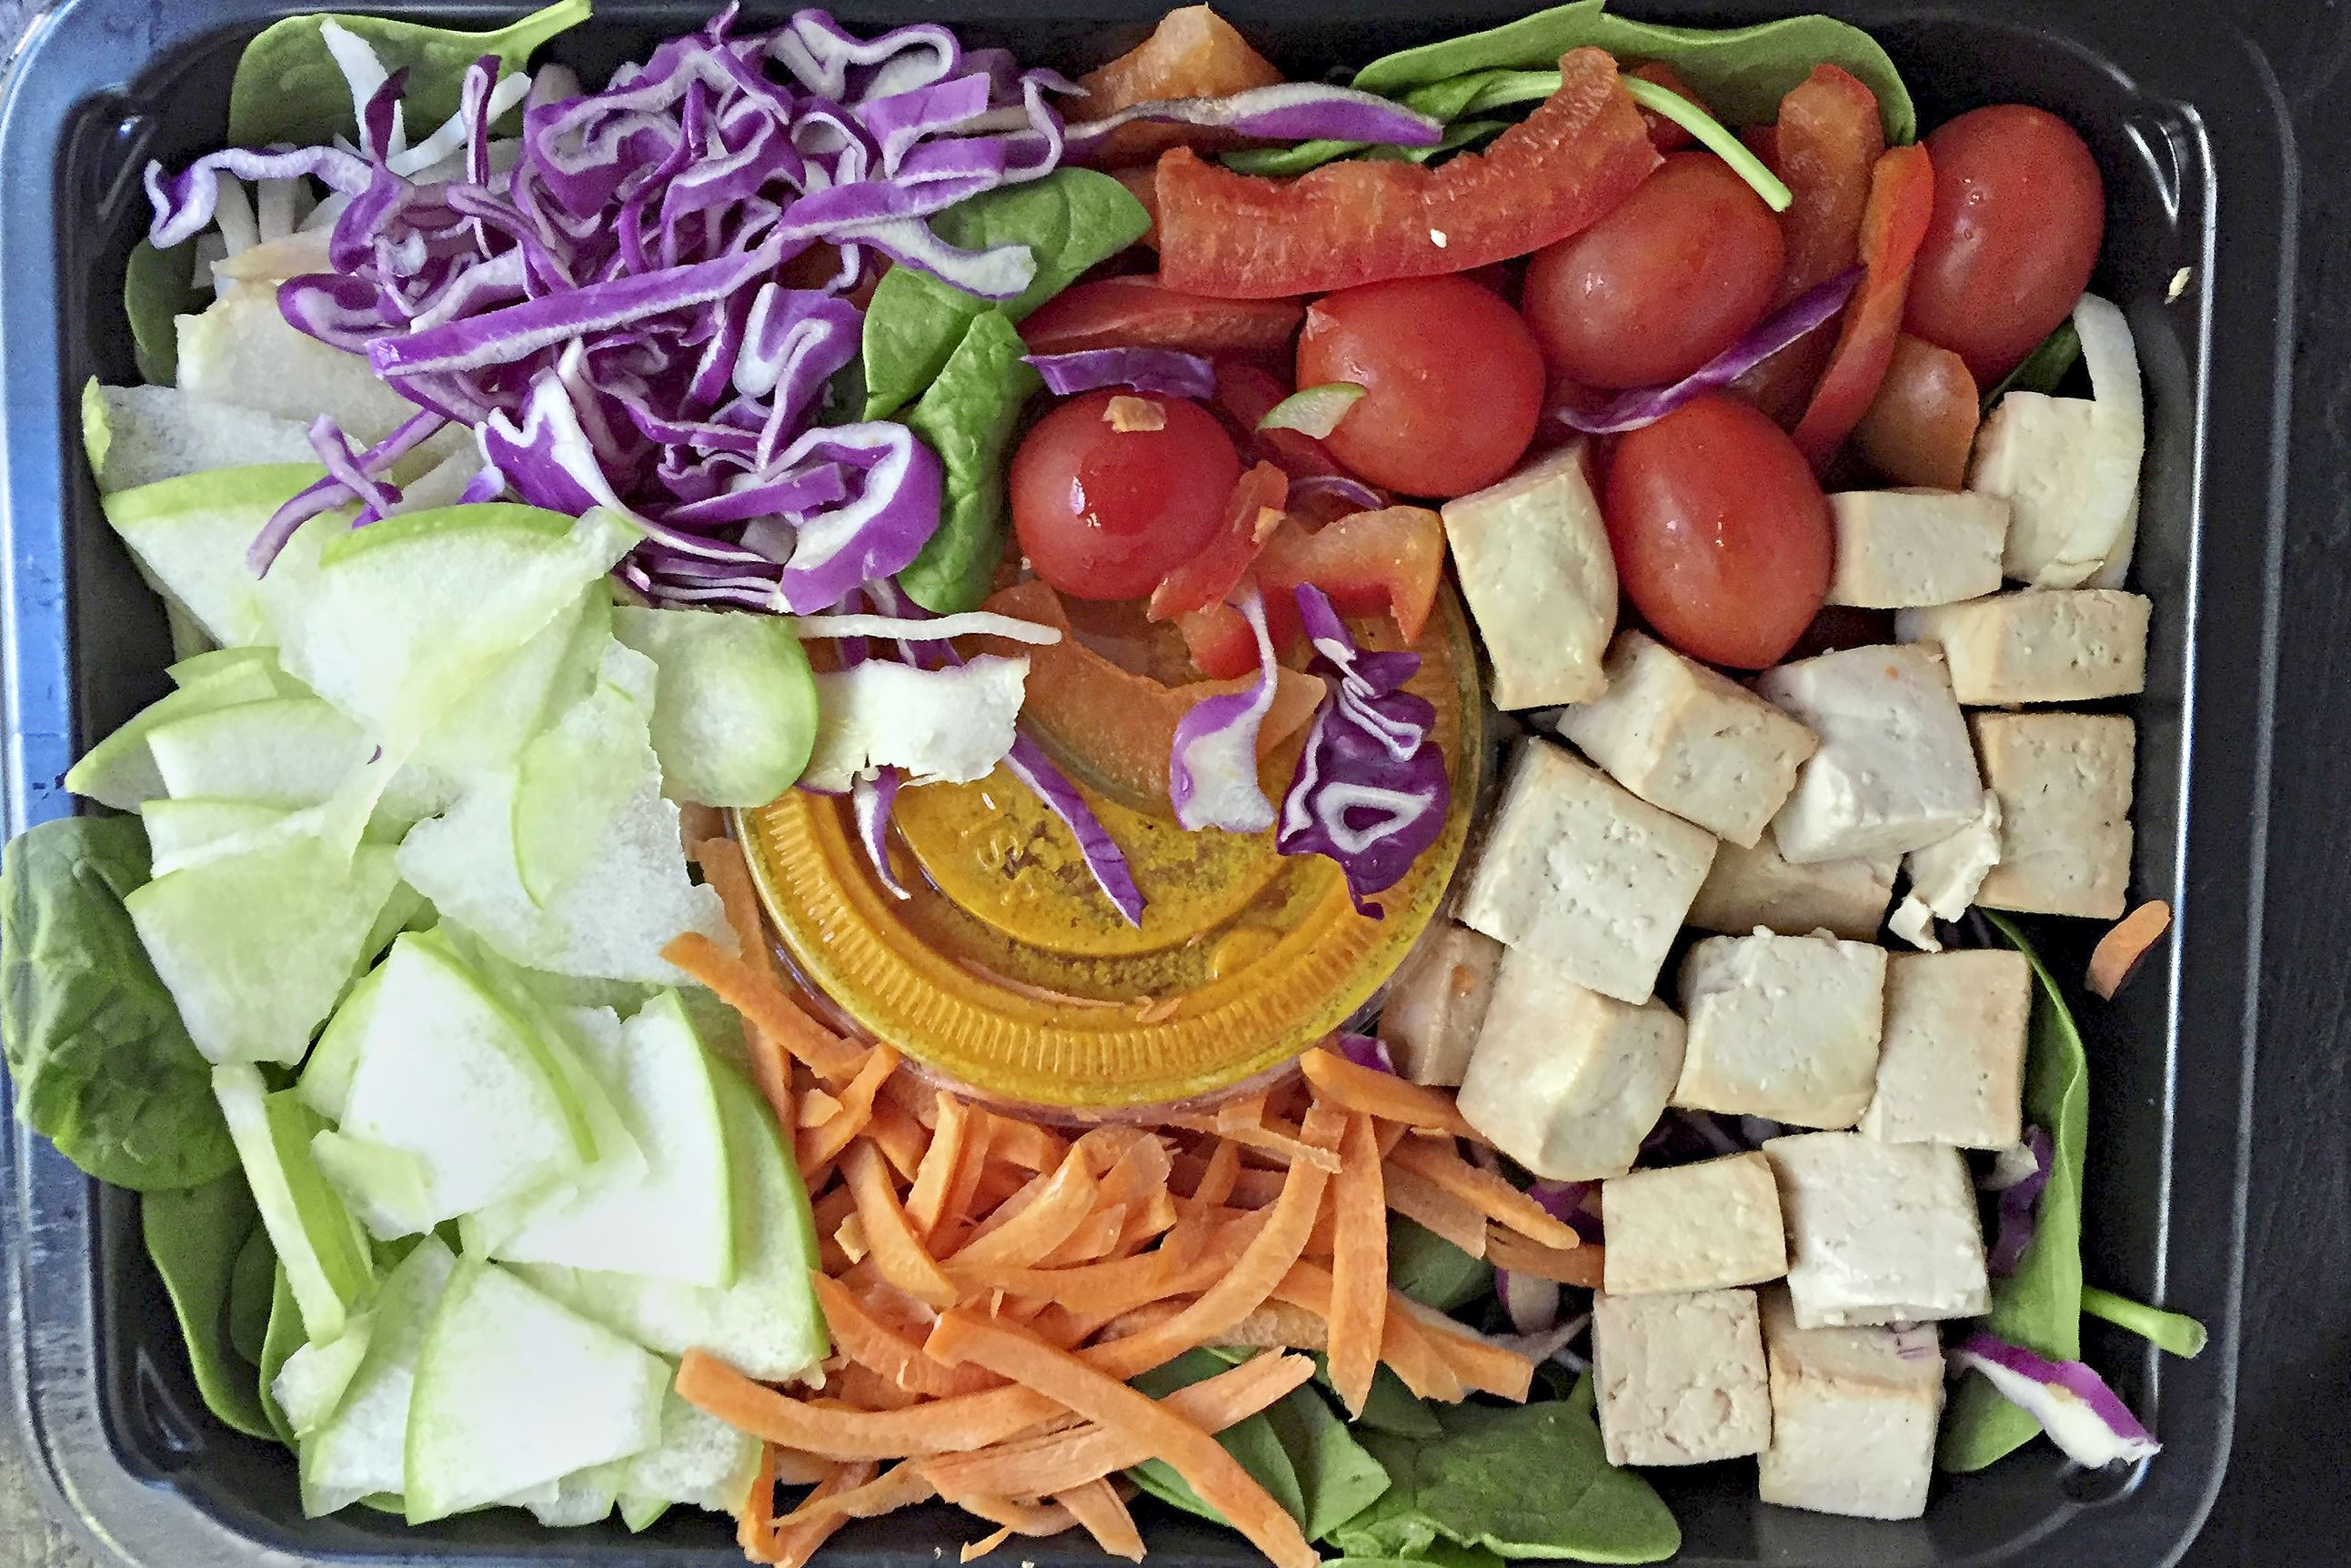 sprinly salad 2-2 Sprinly's weekly selections include cold dishes, such as this vegan Japanese Carrot Ginger Salad with tofu.